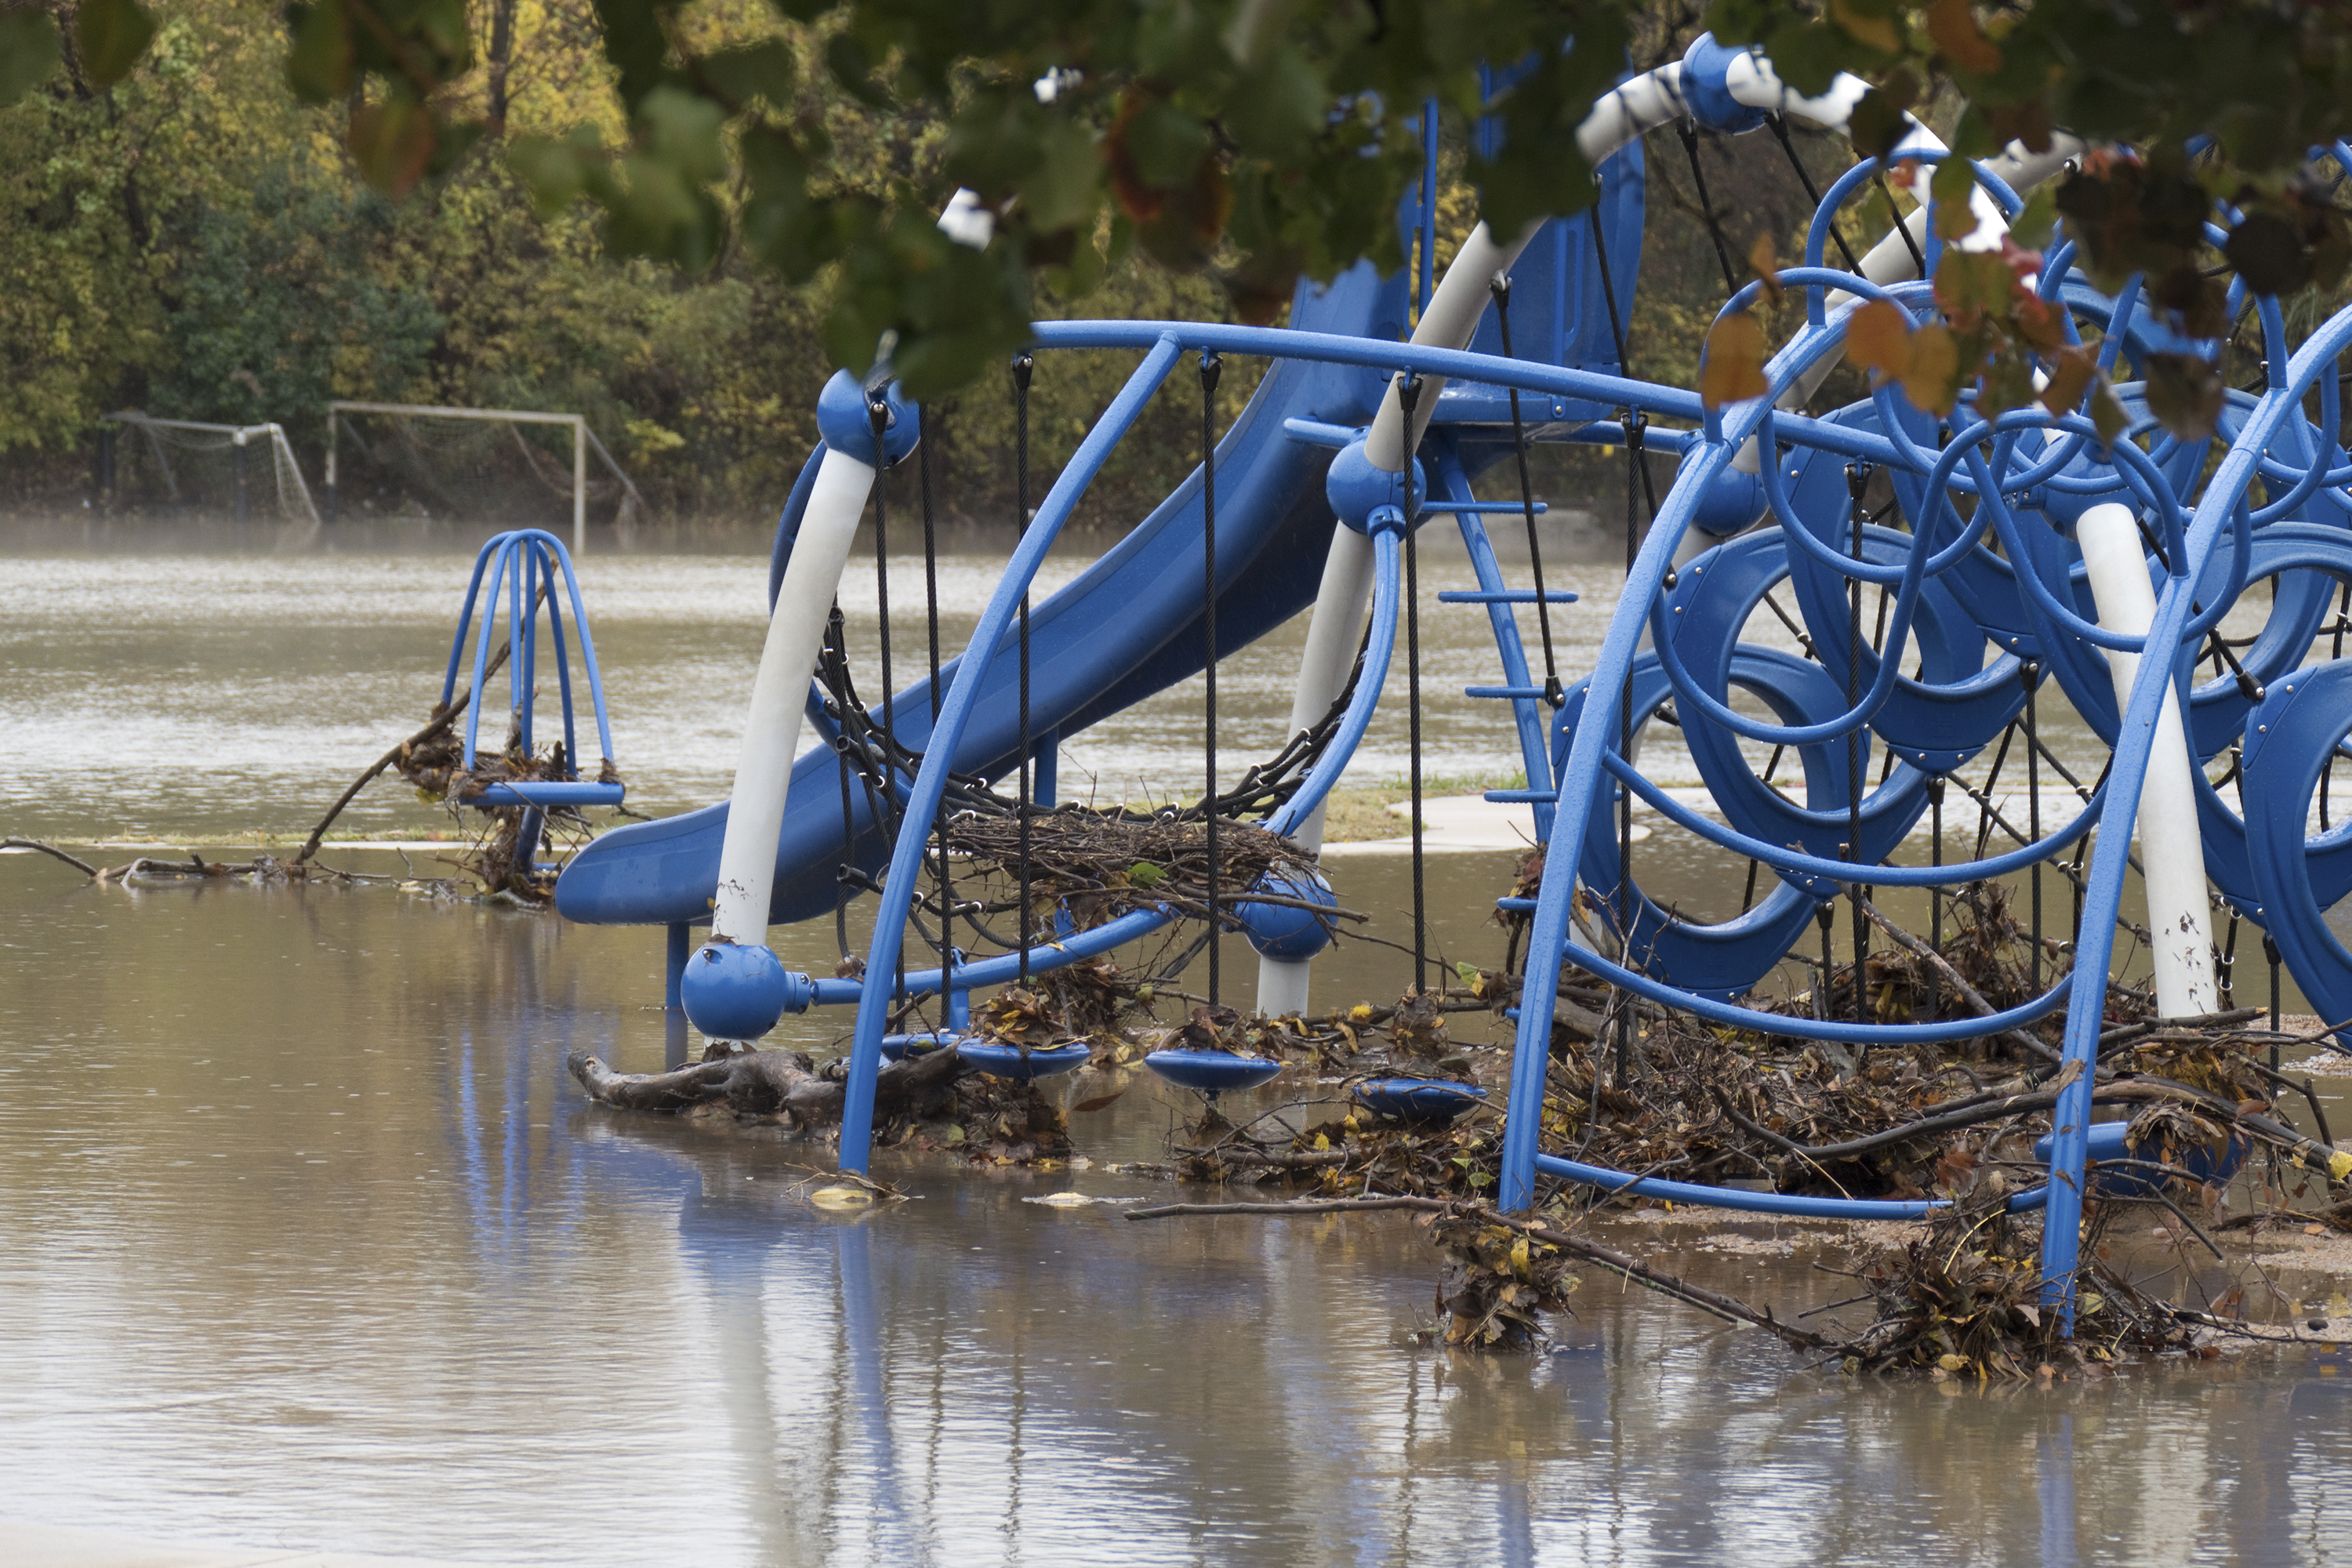 Flooded Colleyville playground equipment Dallas Texas suburb